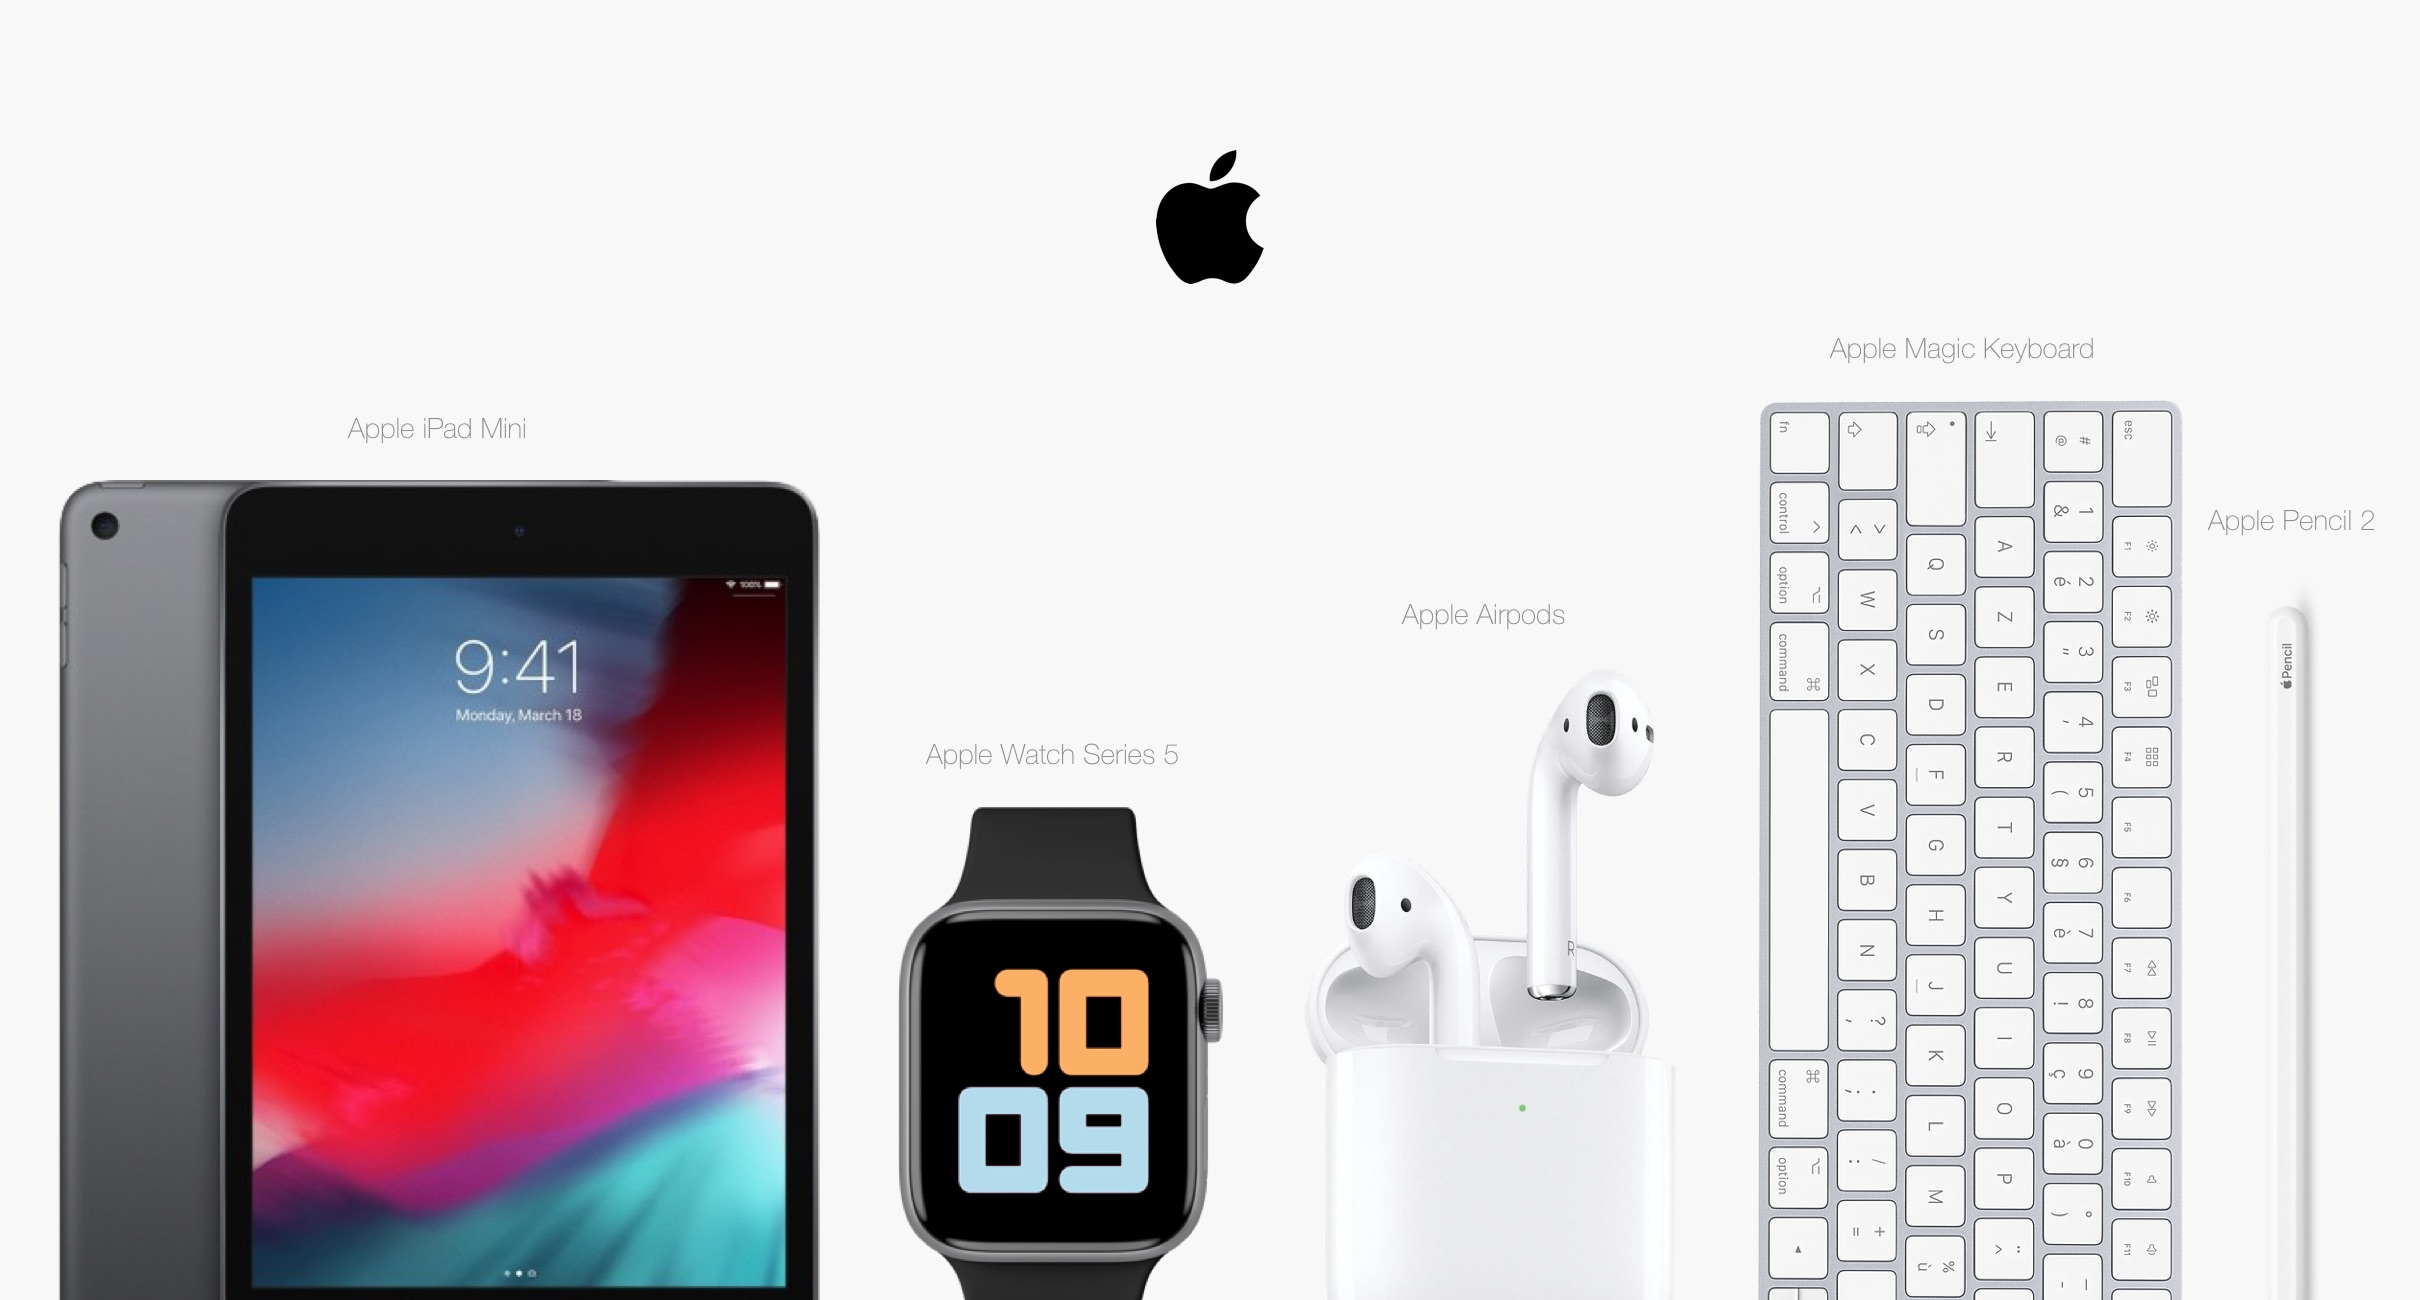 Multiple Apple products on a clean background